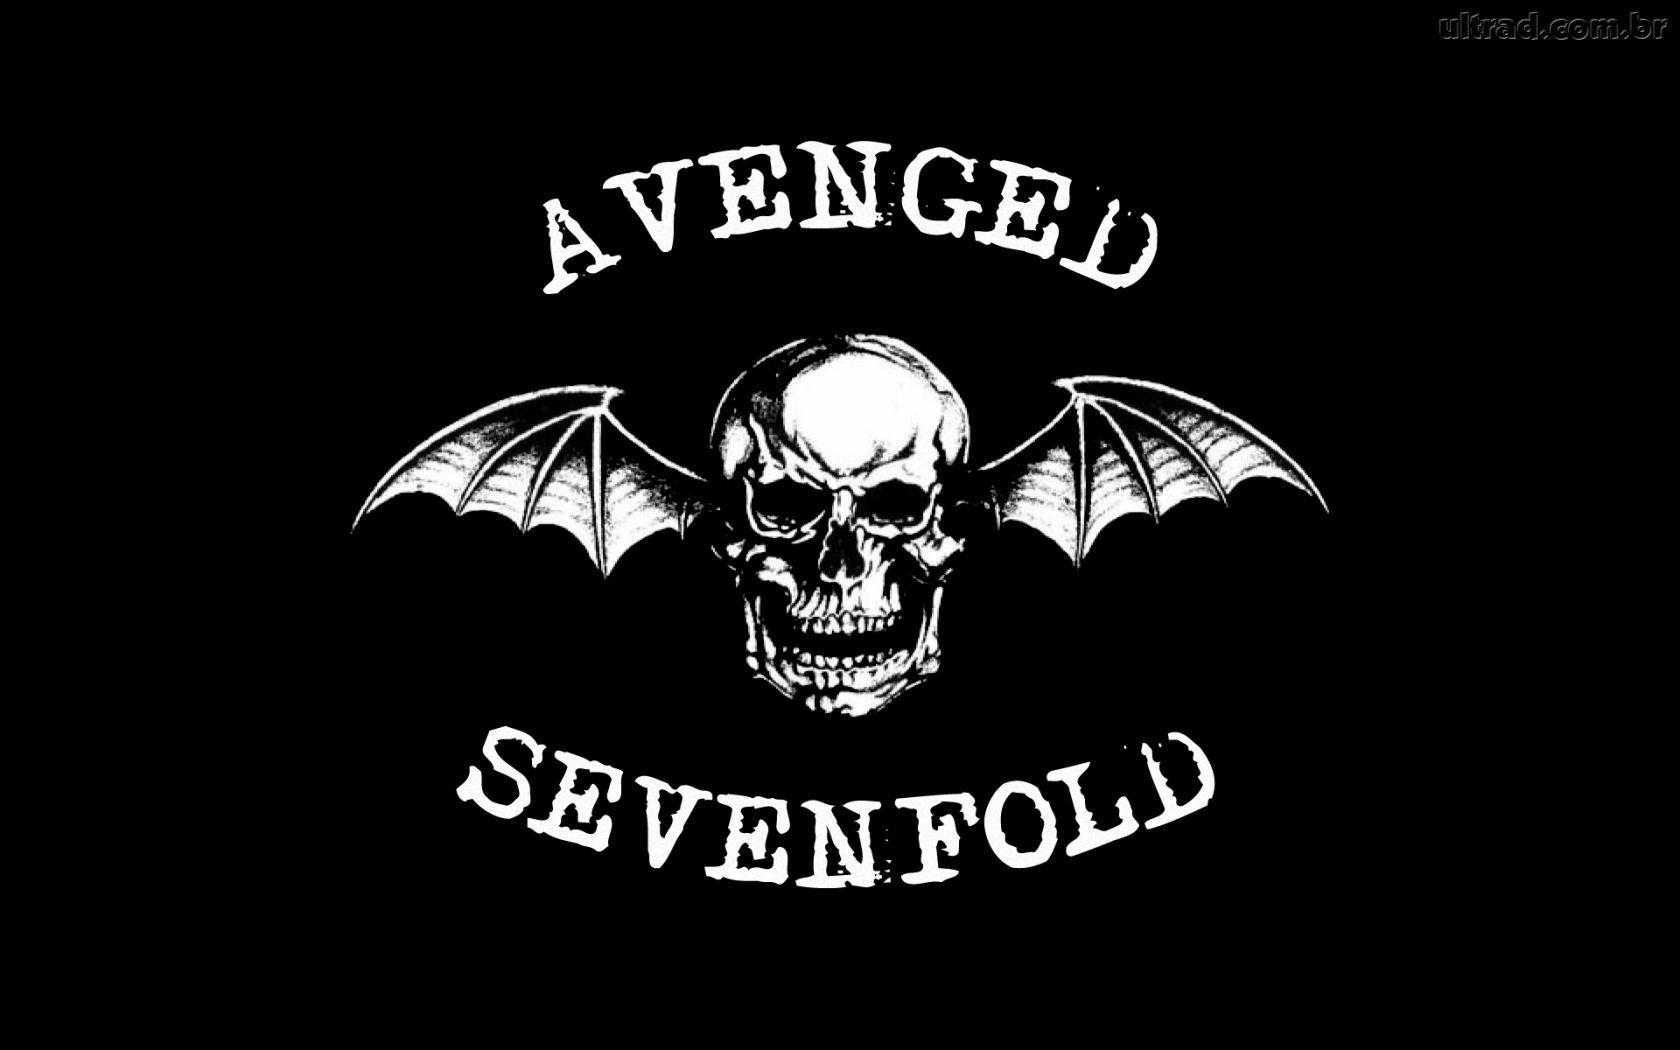 Avenged Sevenfold 2015 Wallpapers 1680x1050